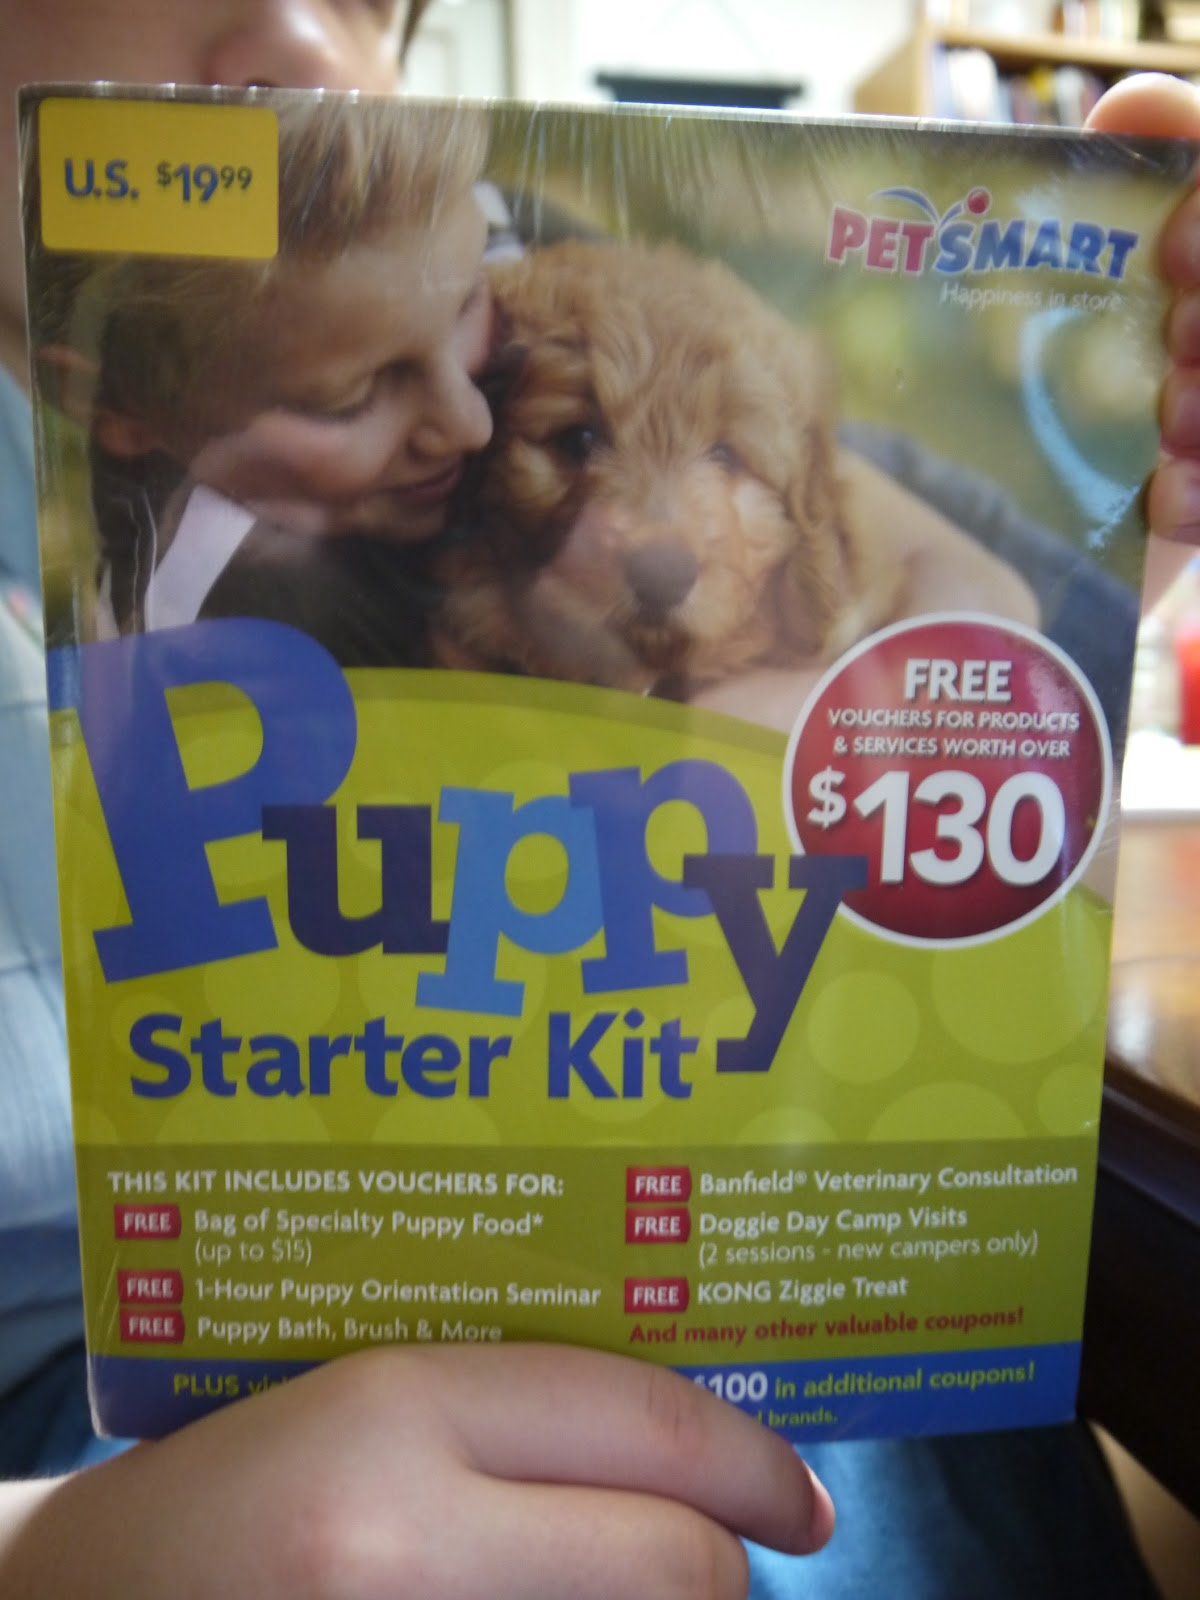 At The Fence Petsmart Puppy Starter Kit